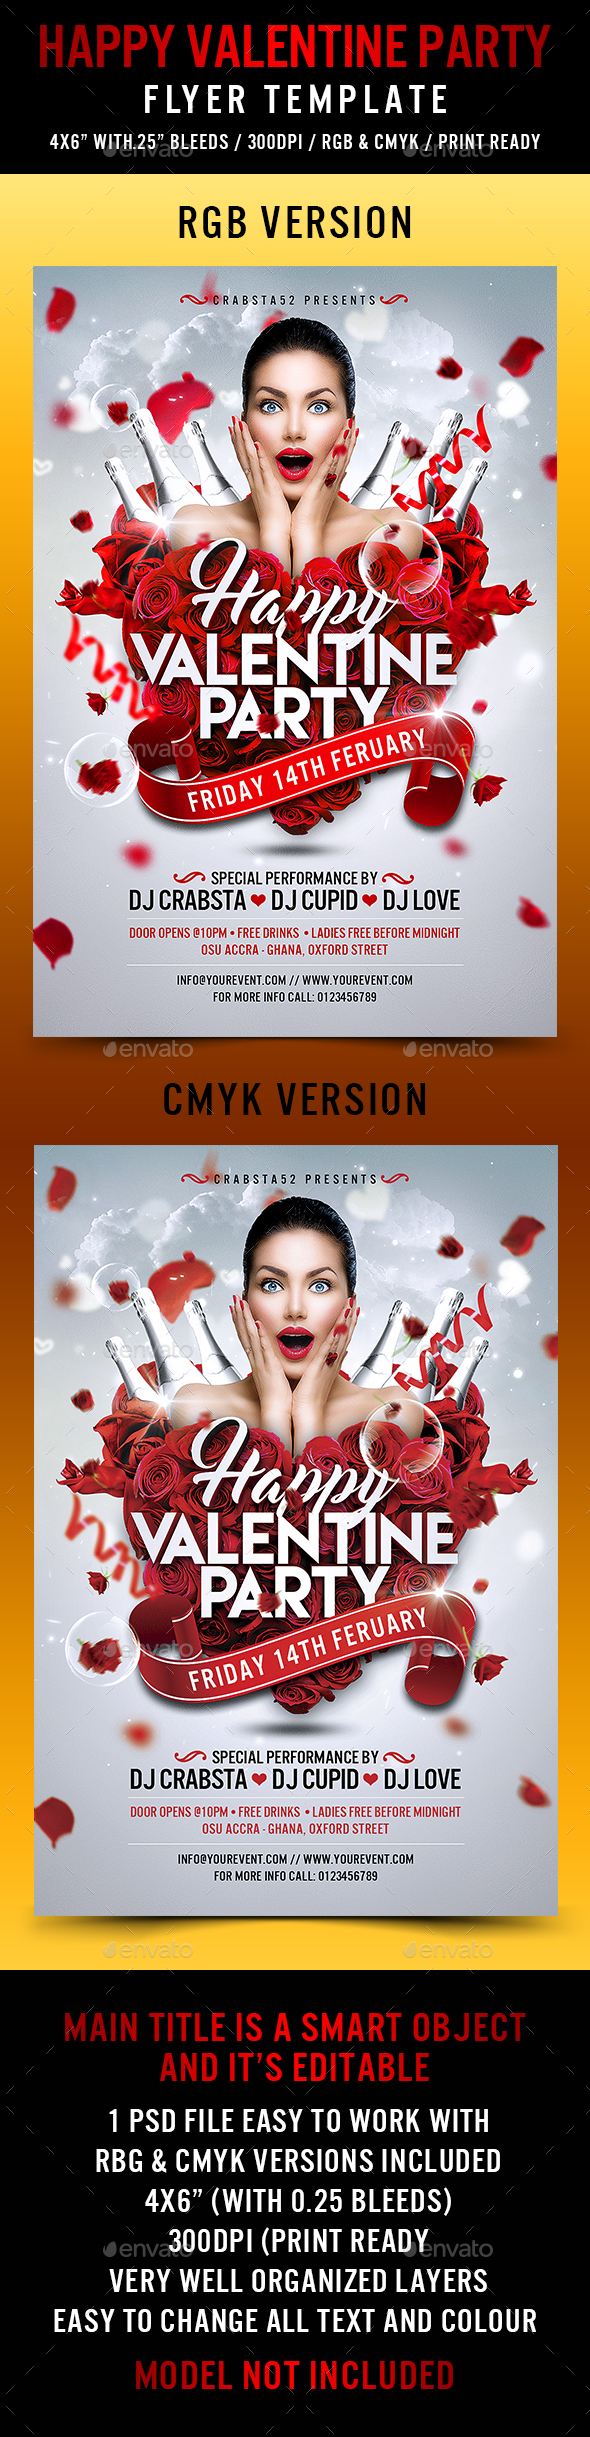 Happy Valentine Party Flyer Template - Events Flyers